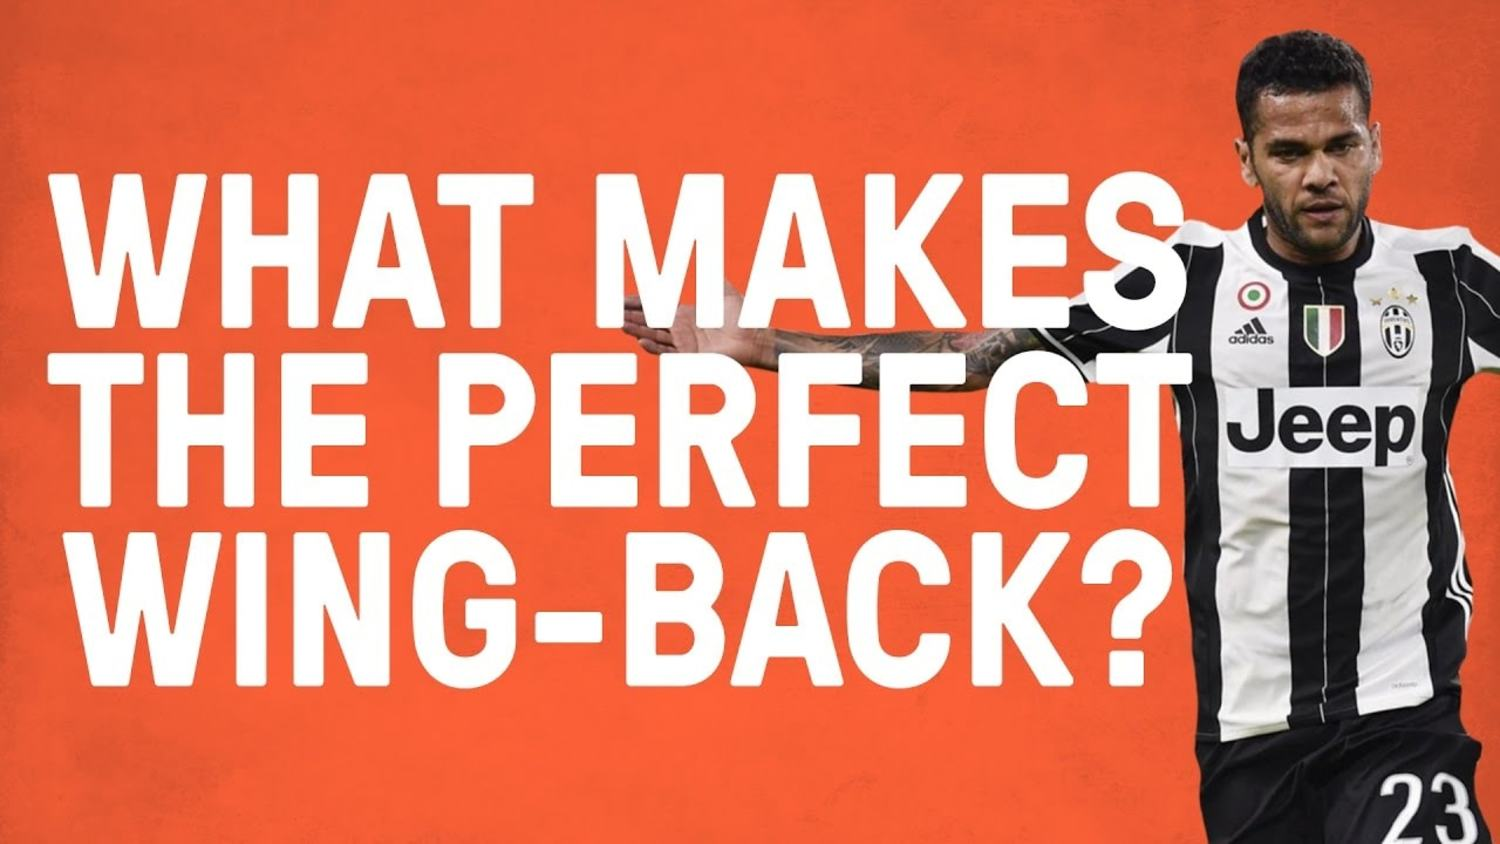 What Makes The Perfect Wing-Back?